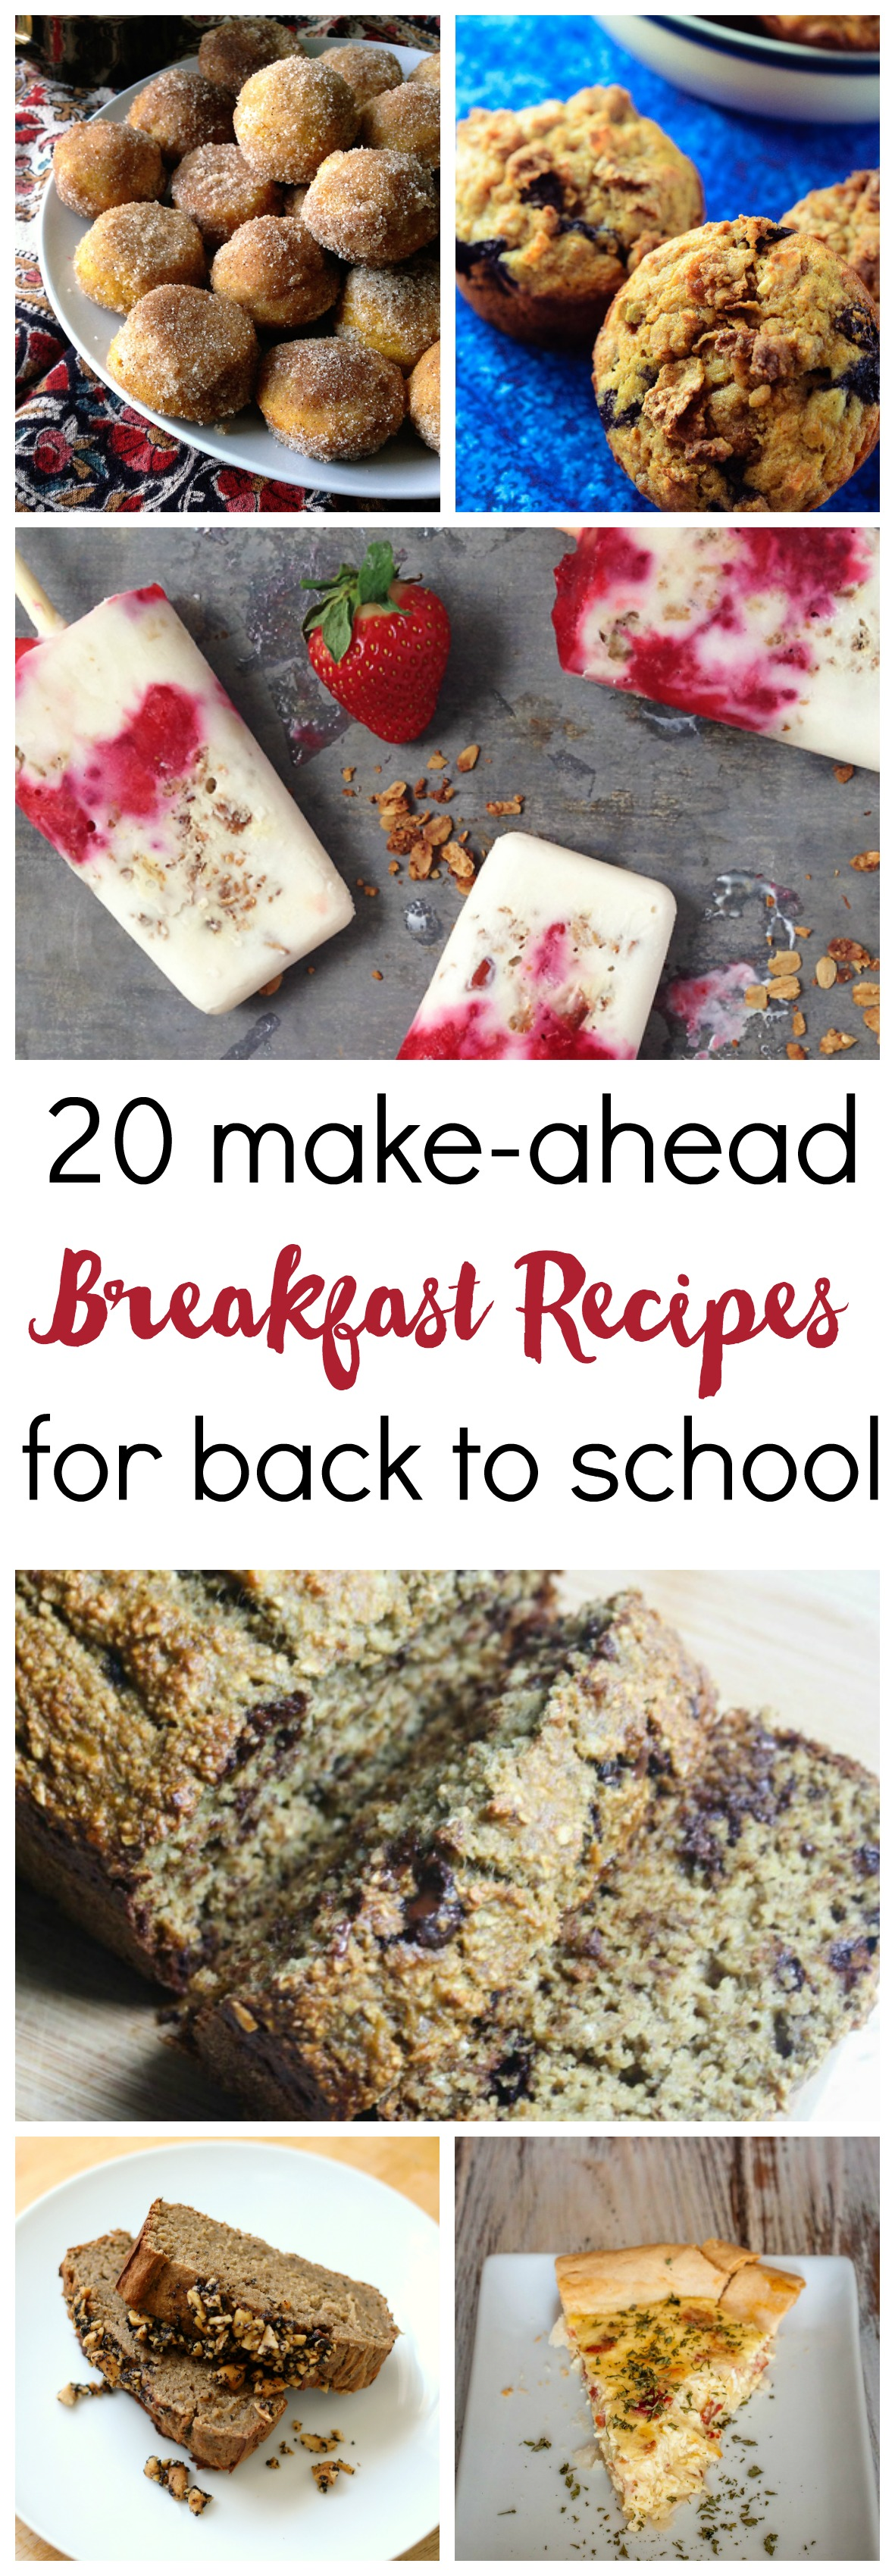 Easy, make-ahead breakfasts are a must for when the kids go back to school! Here are 20 ideas for grab-and-go muffins, breads, donuts, popsicles and more.